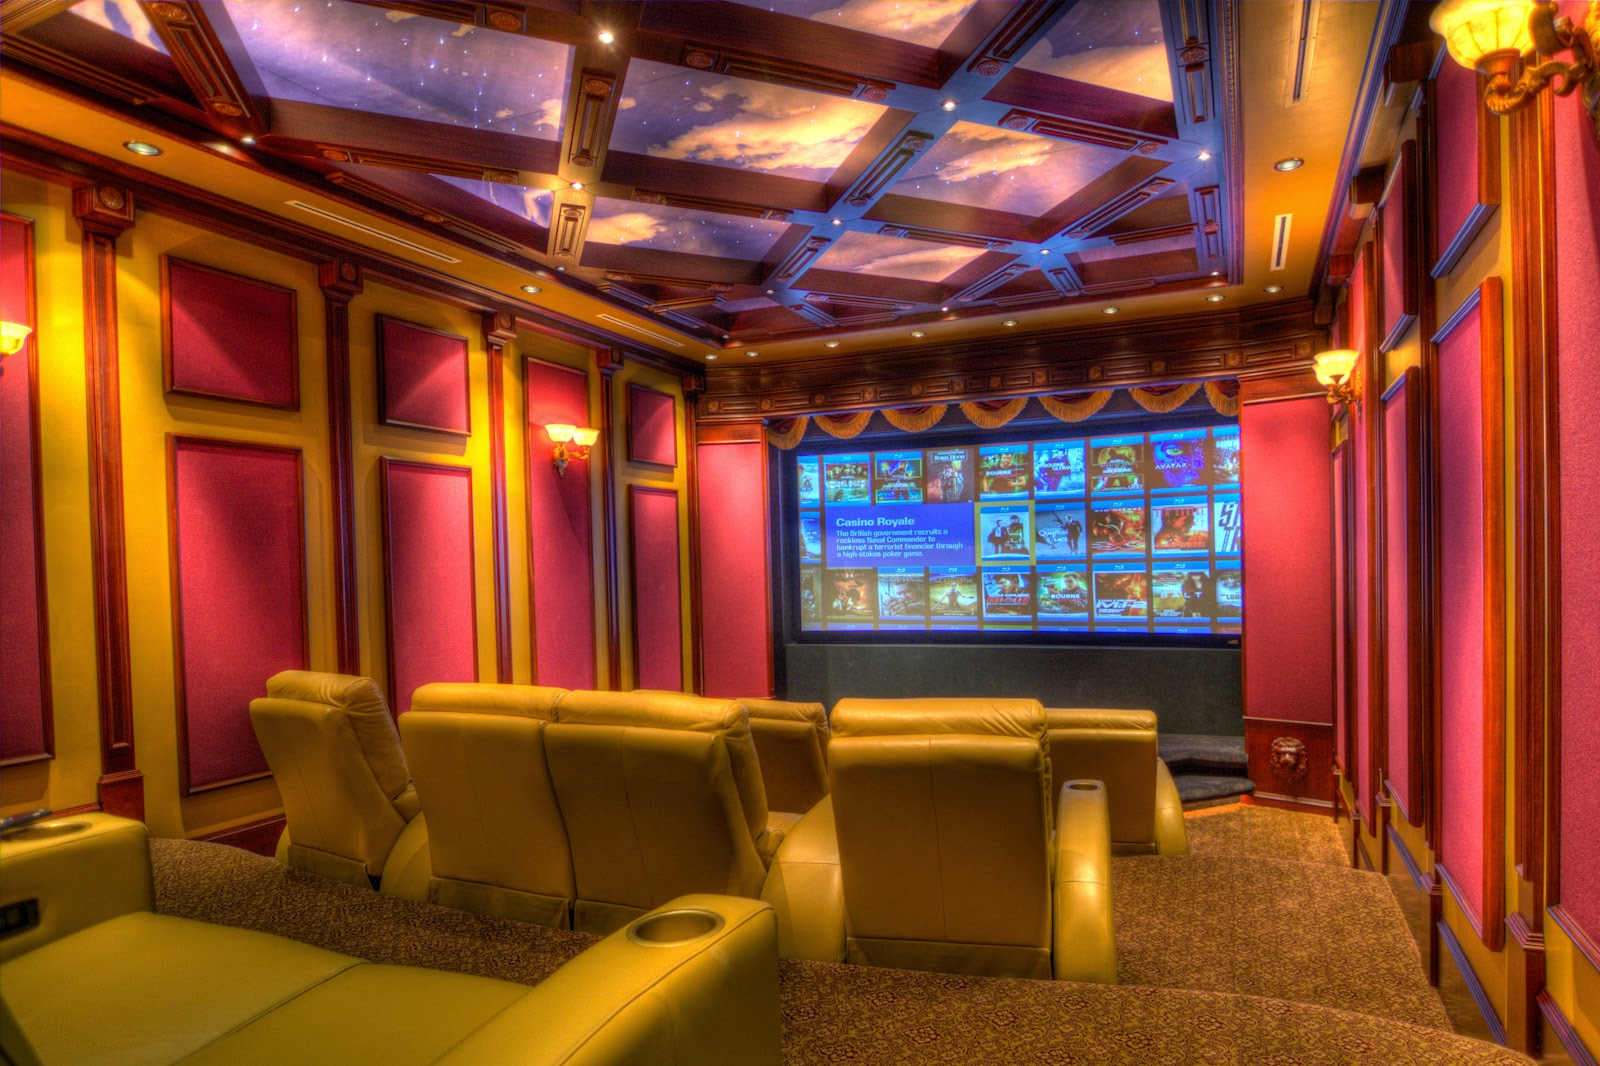 20 home theater creative design ideas cool stuff Home movie theater